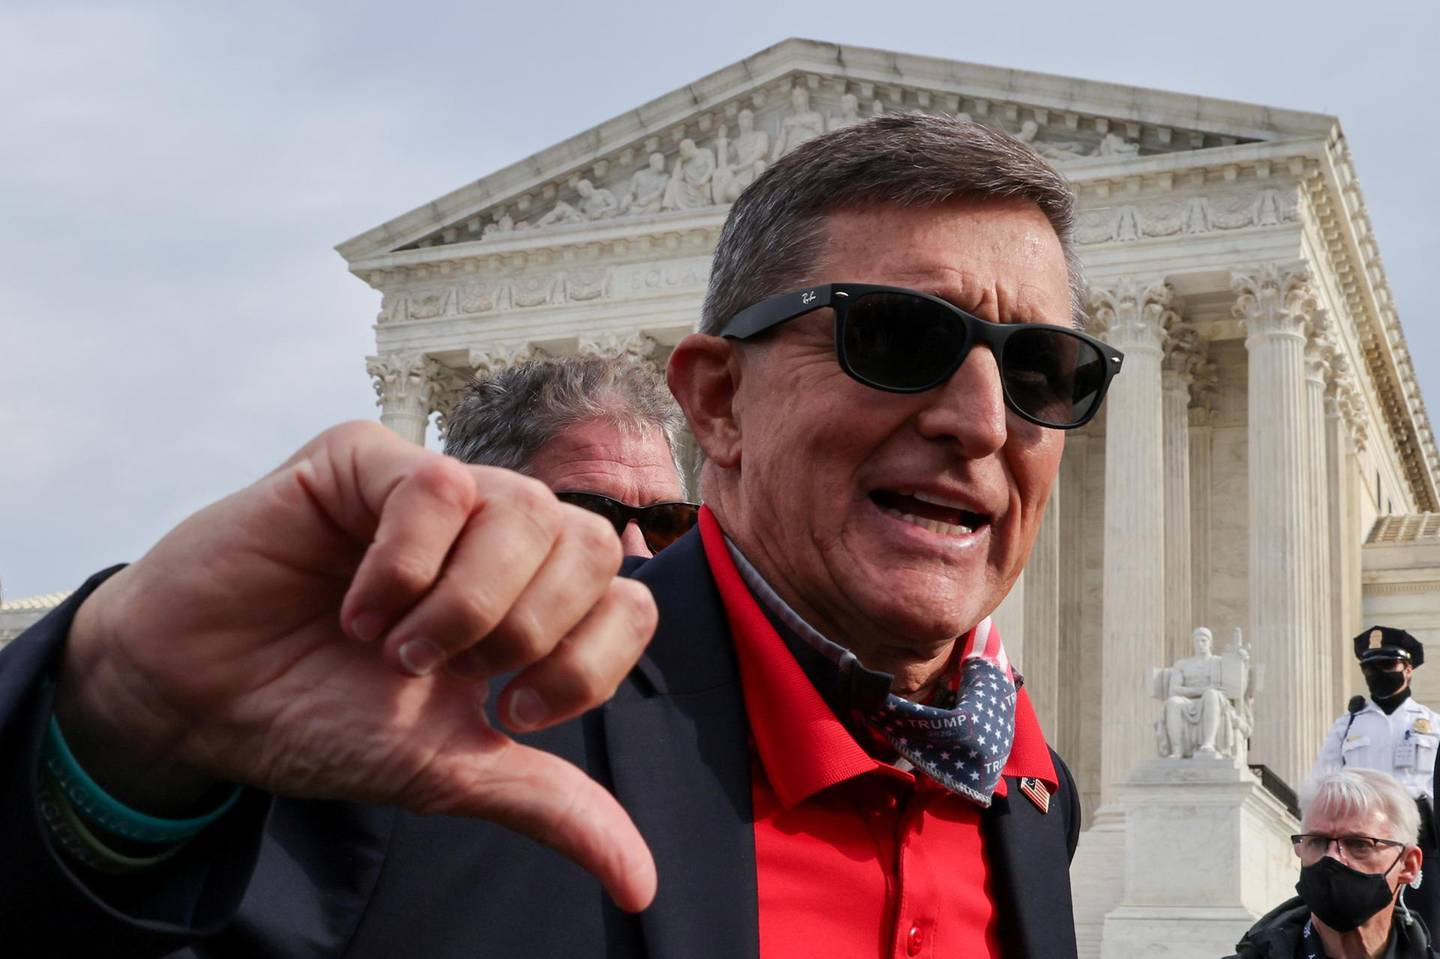 Former U.S. national security adviser Michael Flynn gestures as supporters of U.S. President Donald Trump rally to protest the results of the election in front of Supreme Court building, in Washington, U.S., December 12, 2020. REUTERS/Jonathan Ernst     TPX IMAGES OF THE DAY